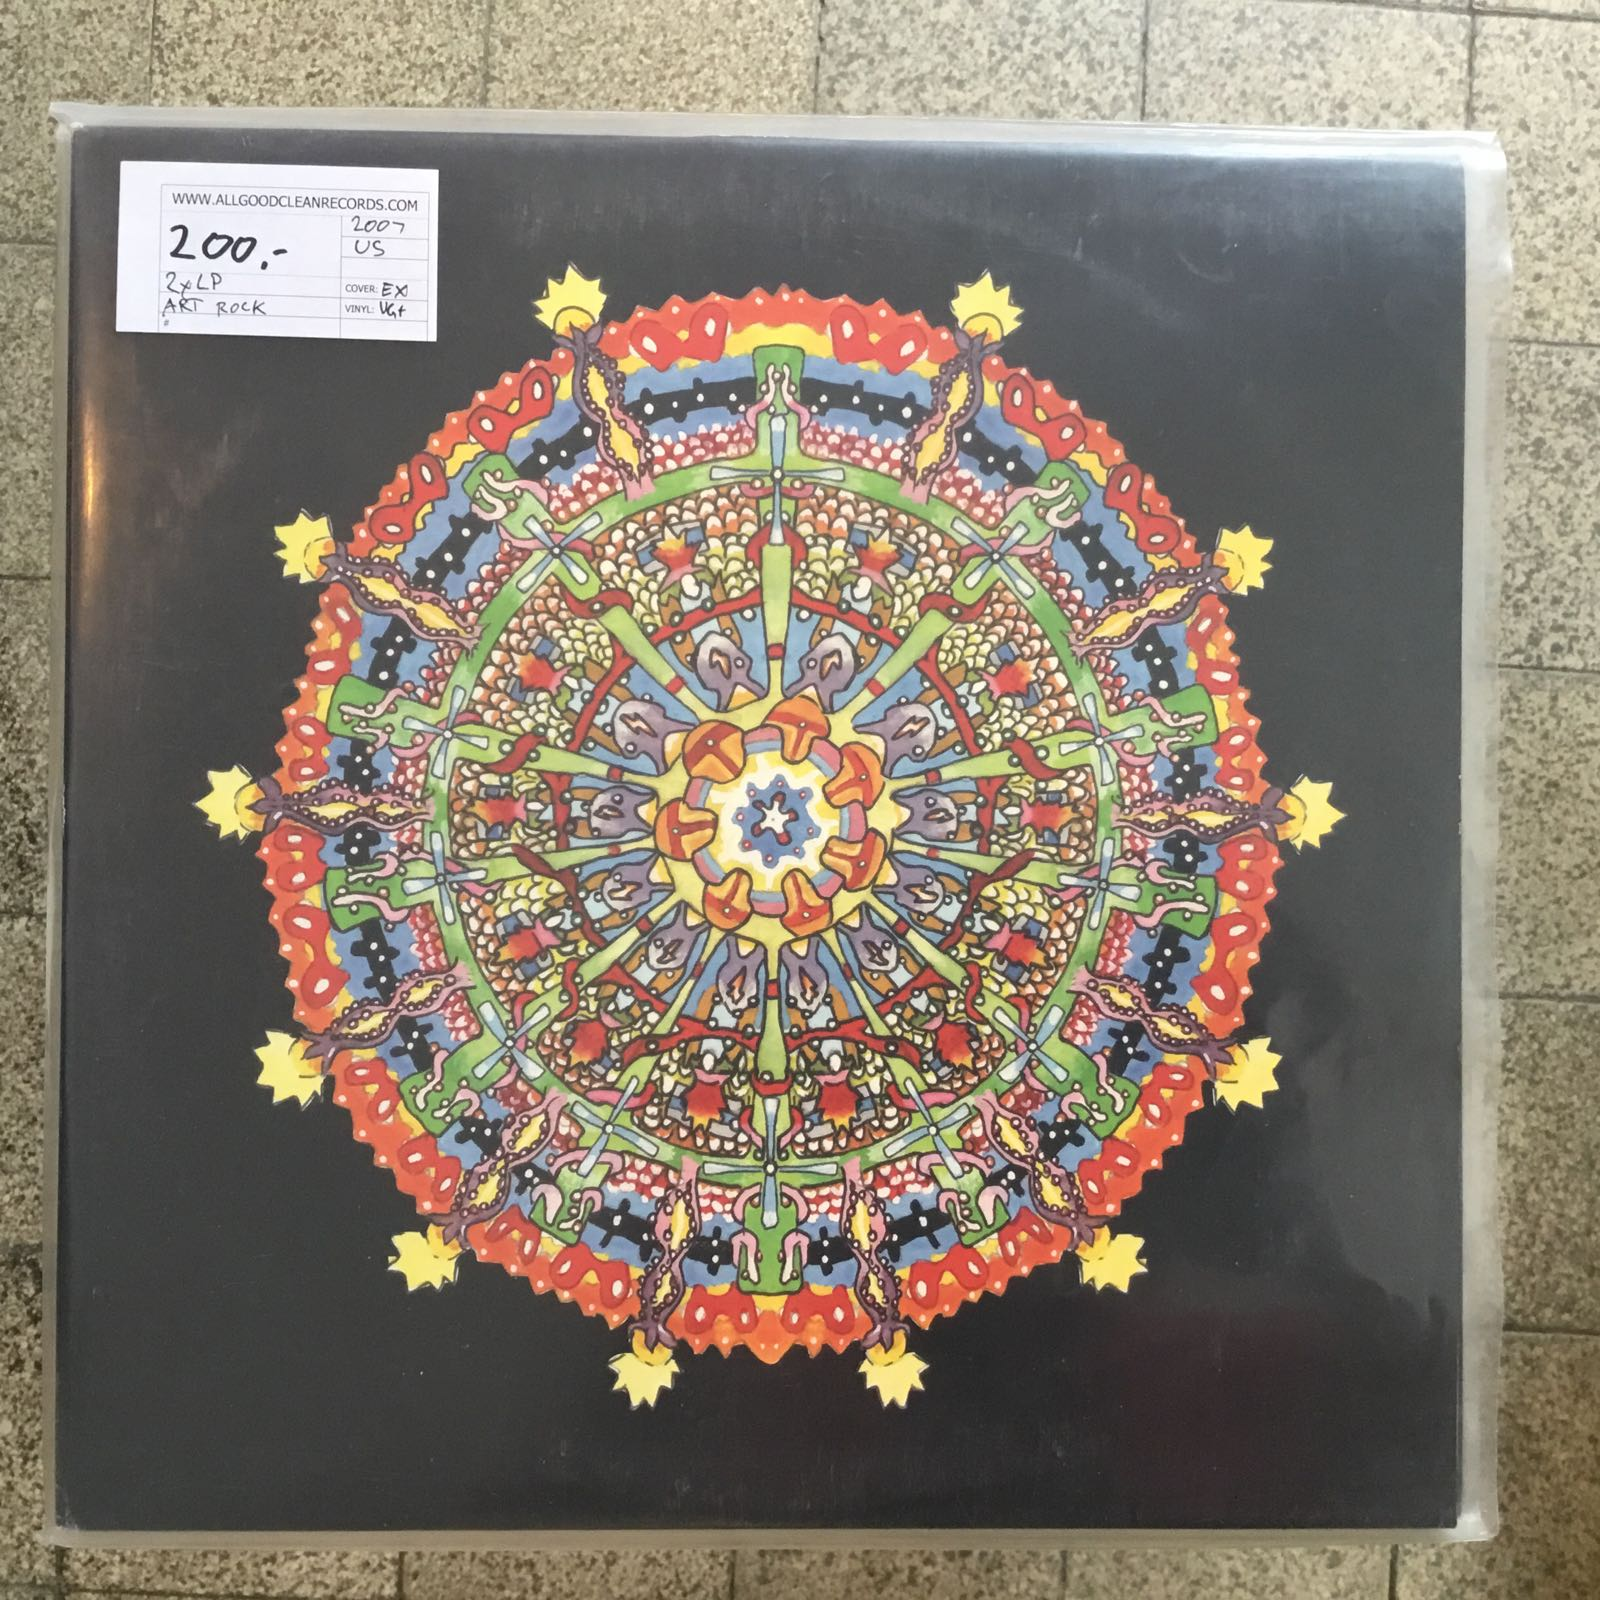 Of Montreal - Hissing Fauna, Are You The Destroyer? [2xLP] (2. hand)